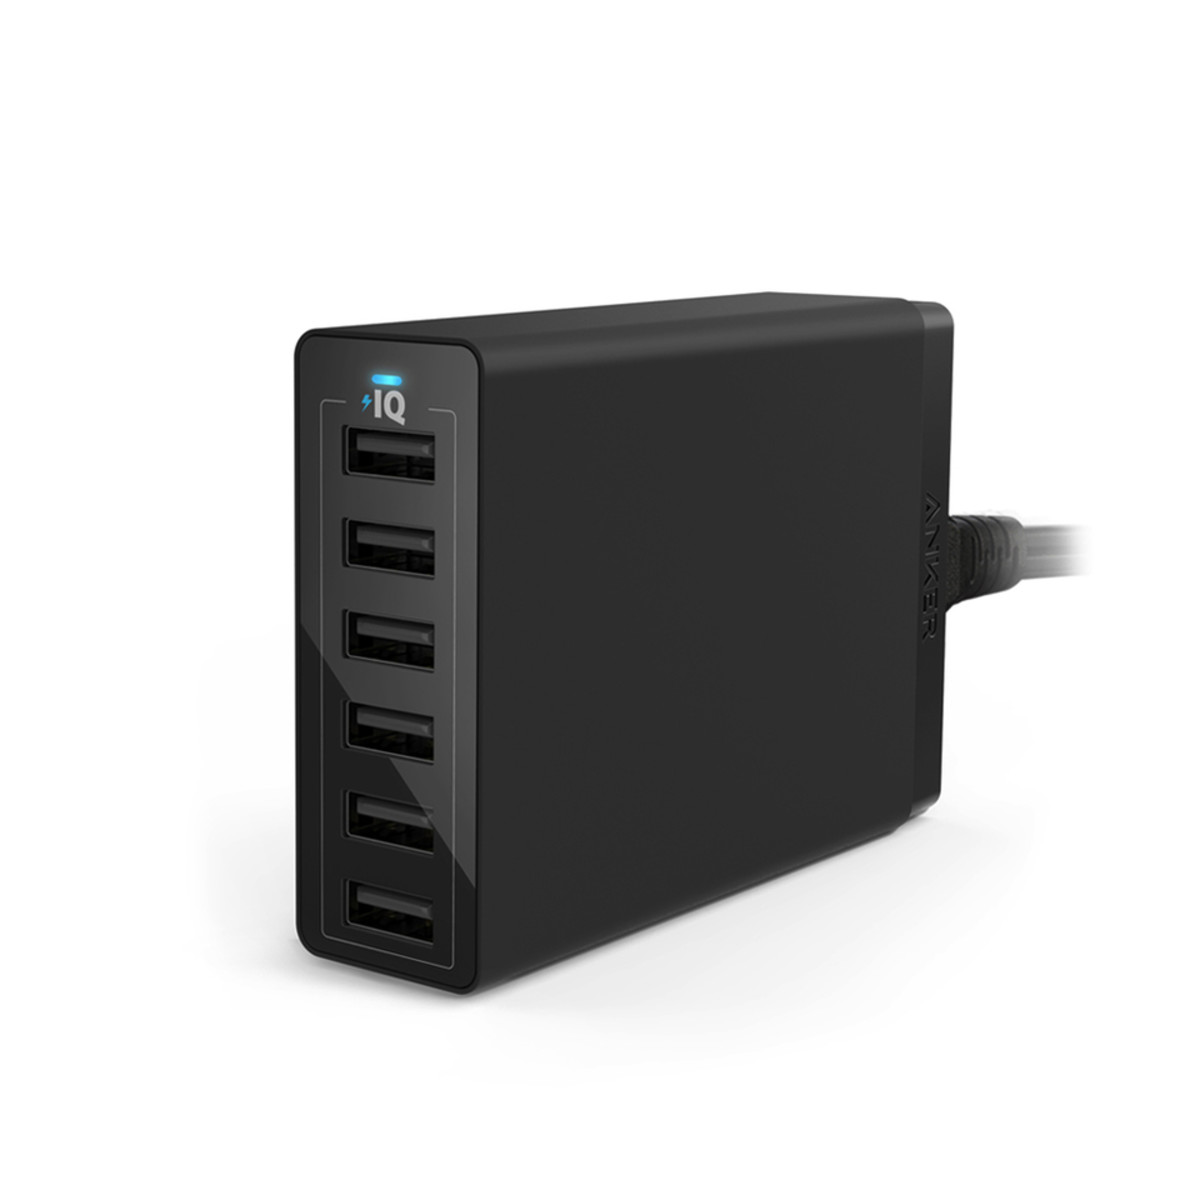 Troubleshooting Anker PowerPort Problems